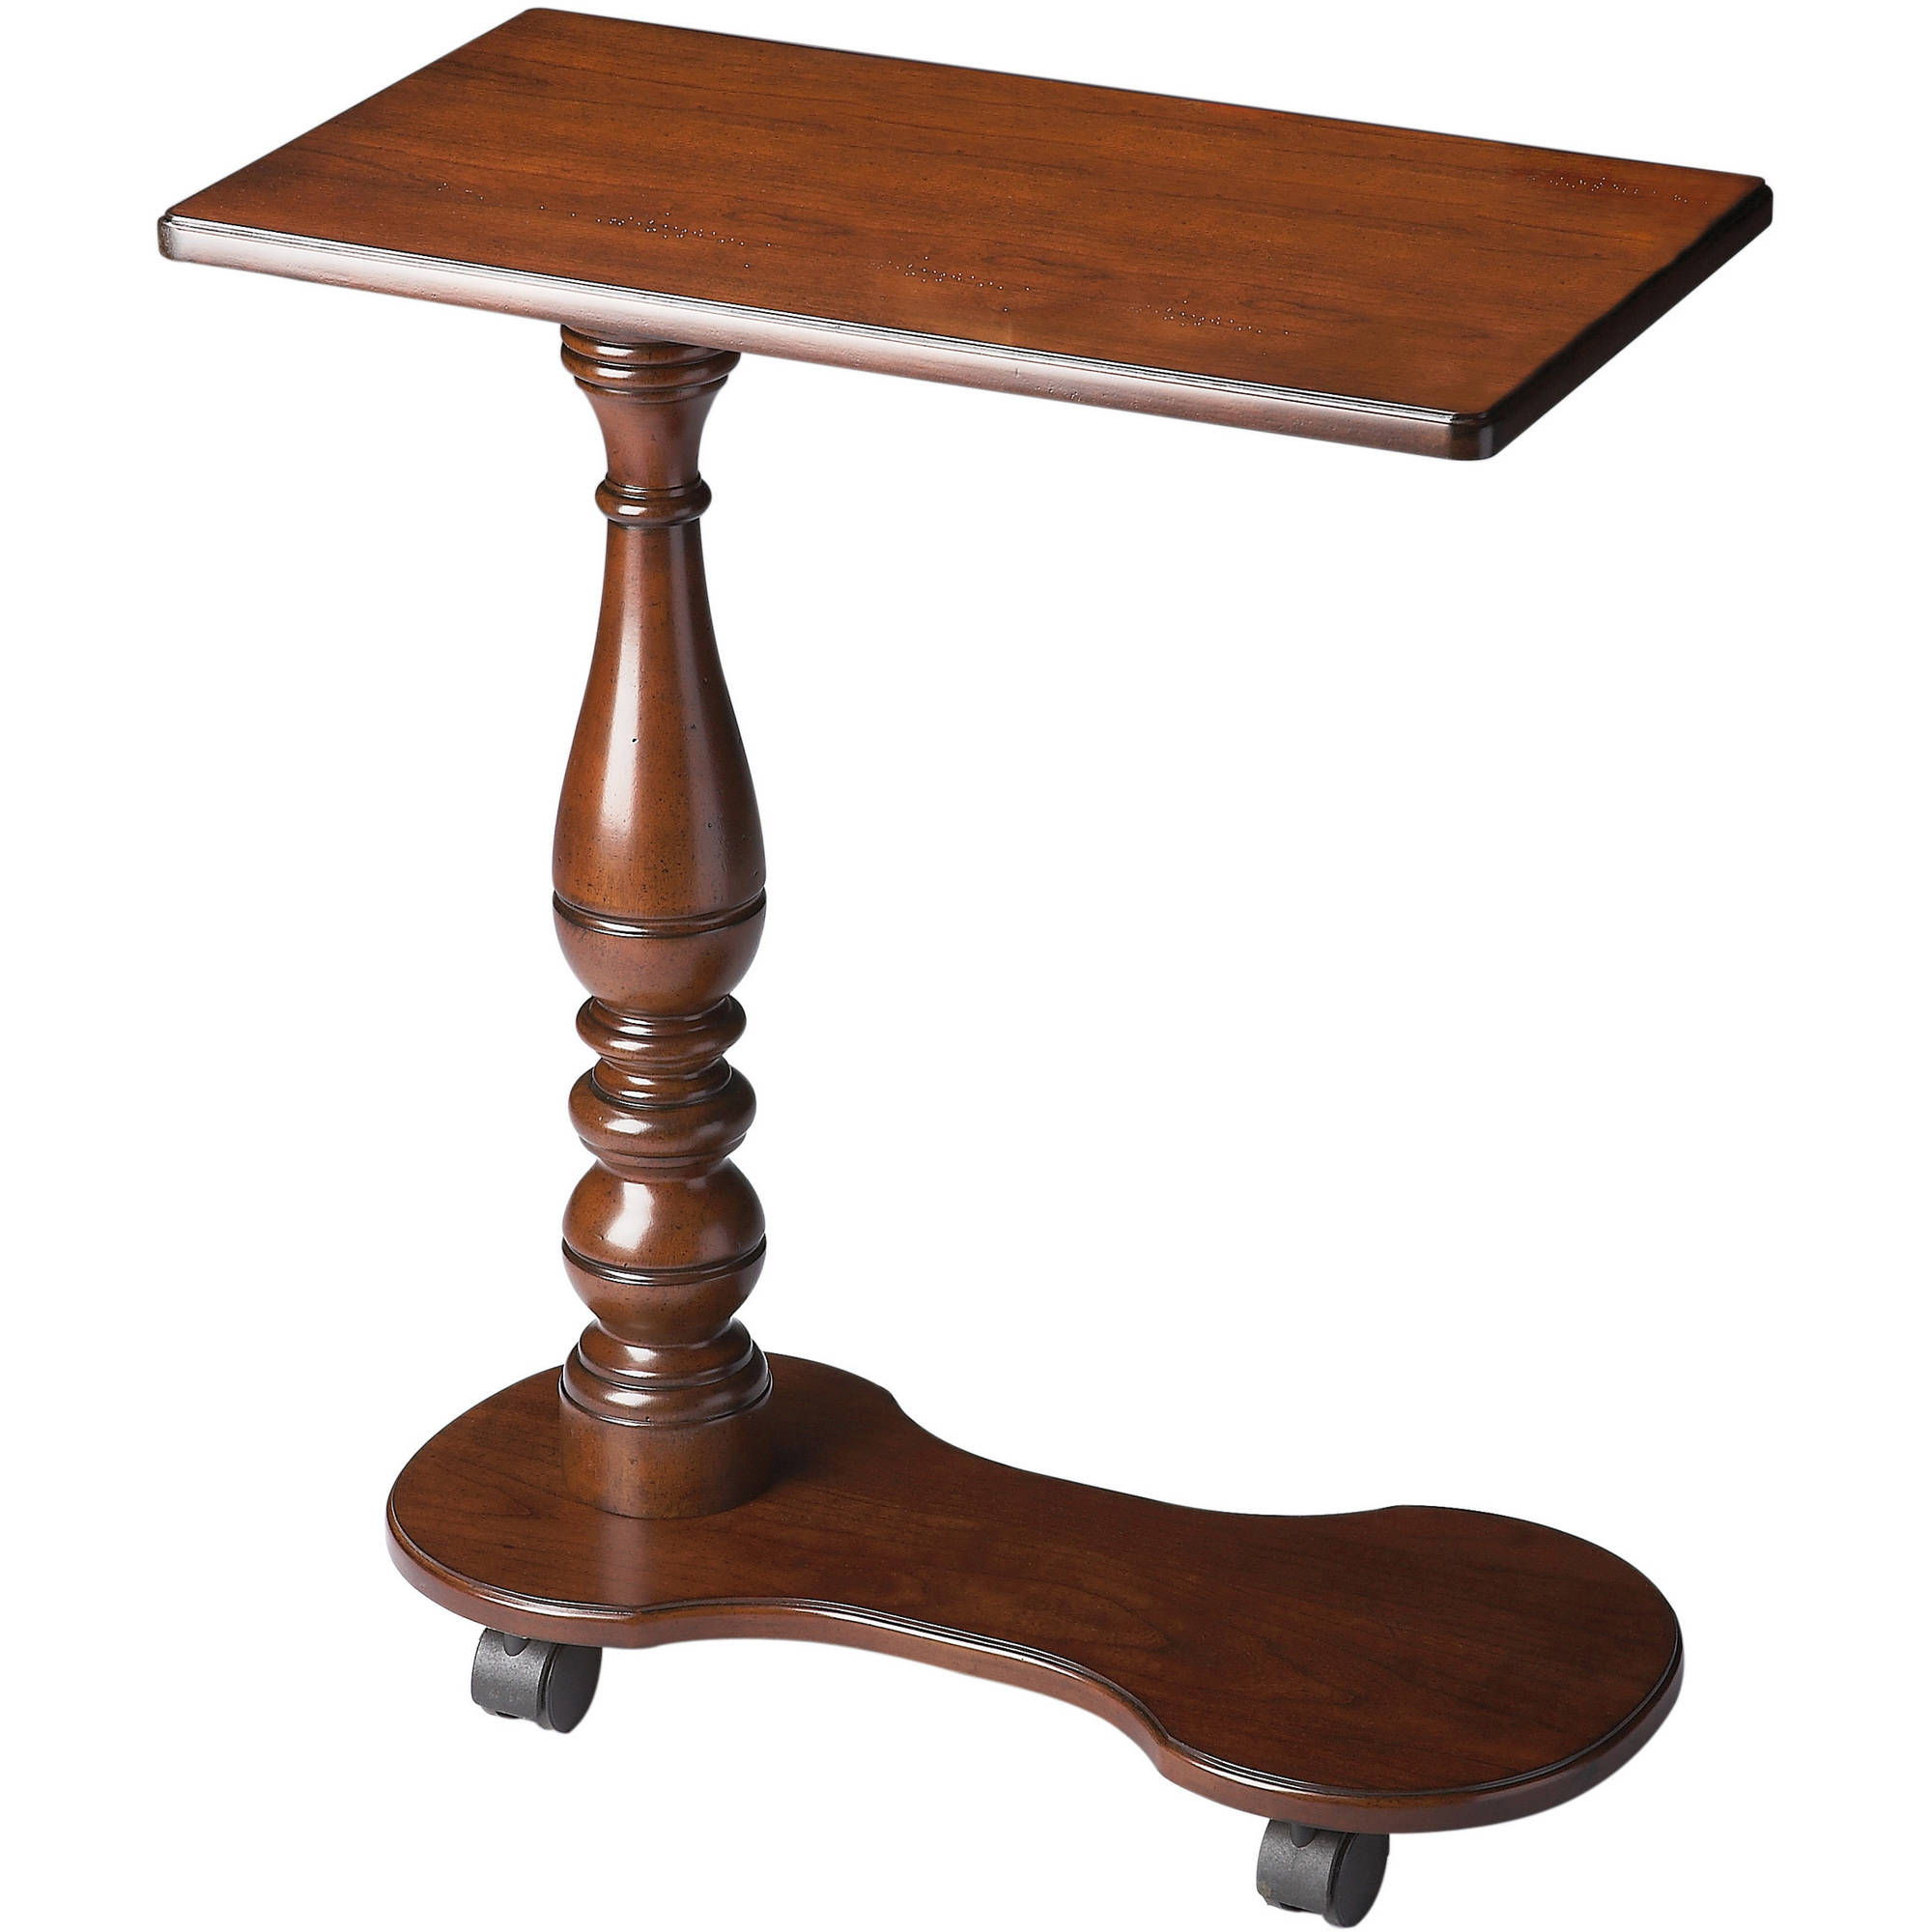 Butler Mabry Olive Ash Burl Mobile Tray Table